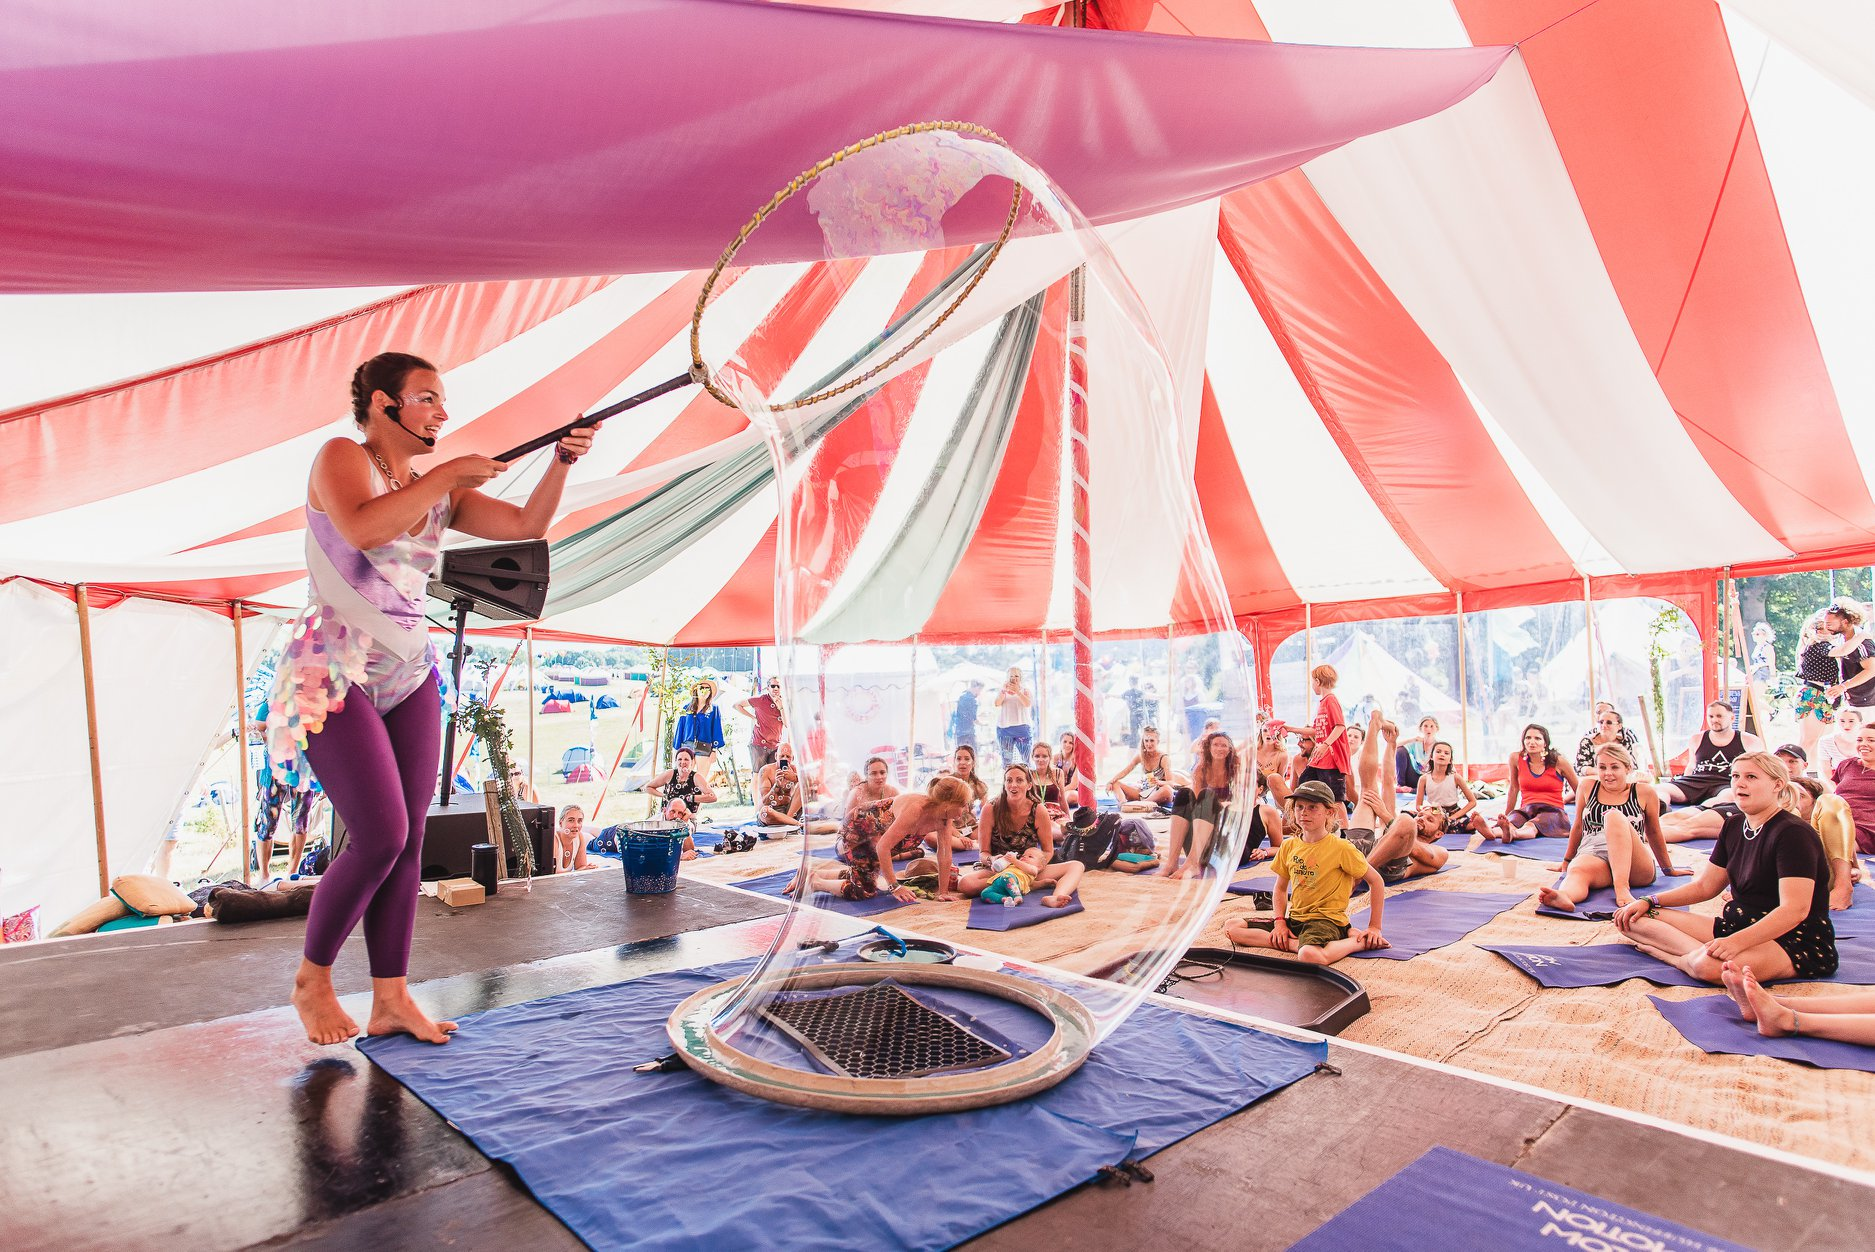 Bestival news: An absolutely wicked day full of sunshine, music, fun times and friendship!